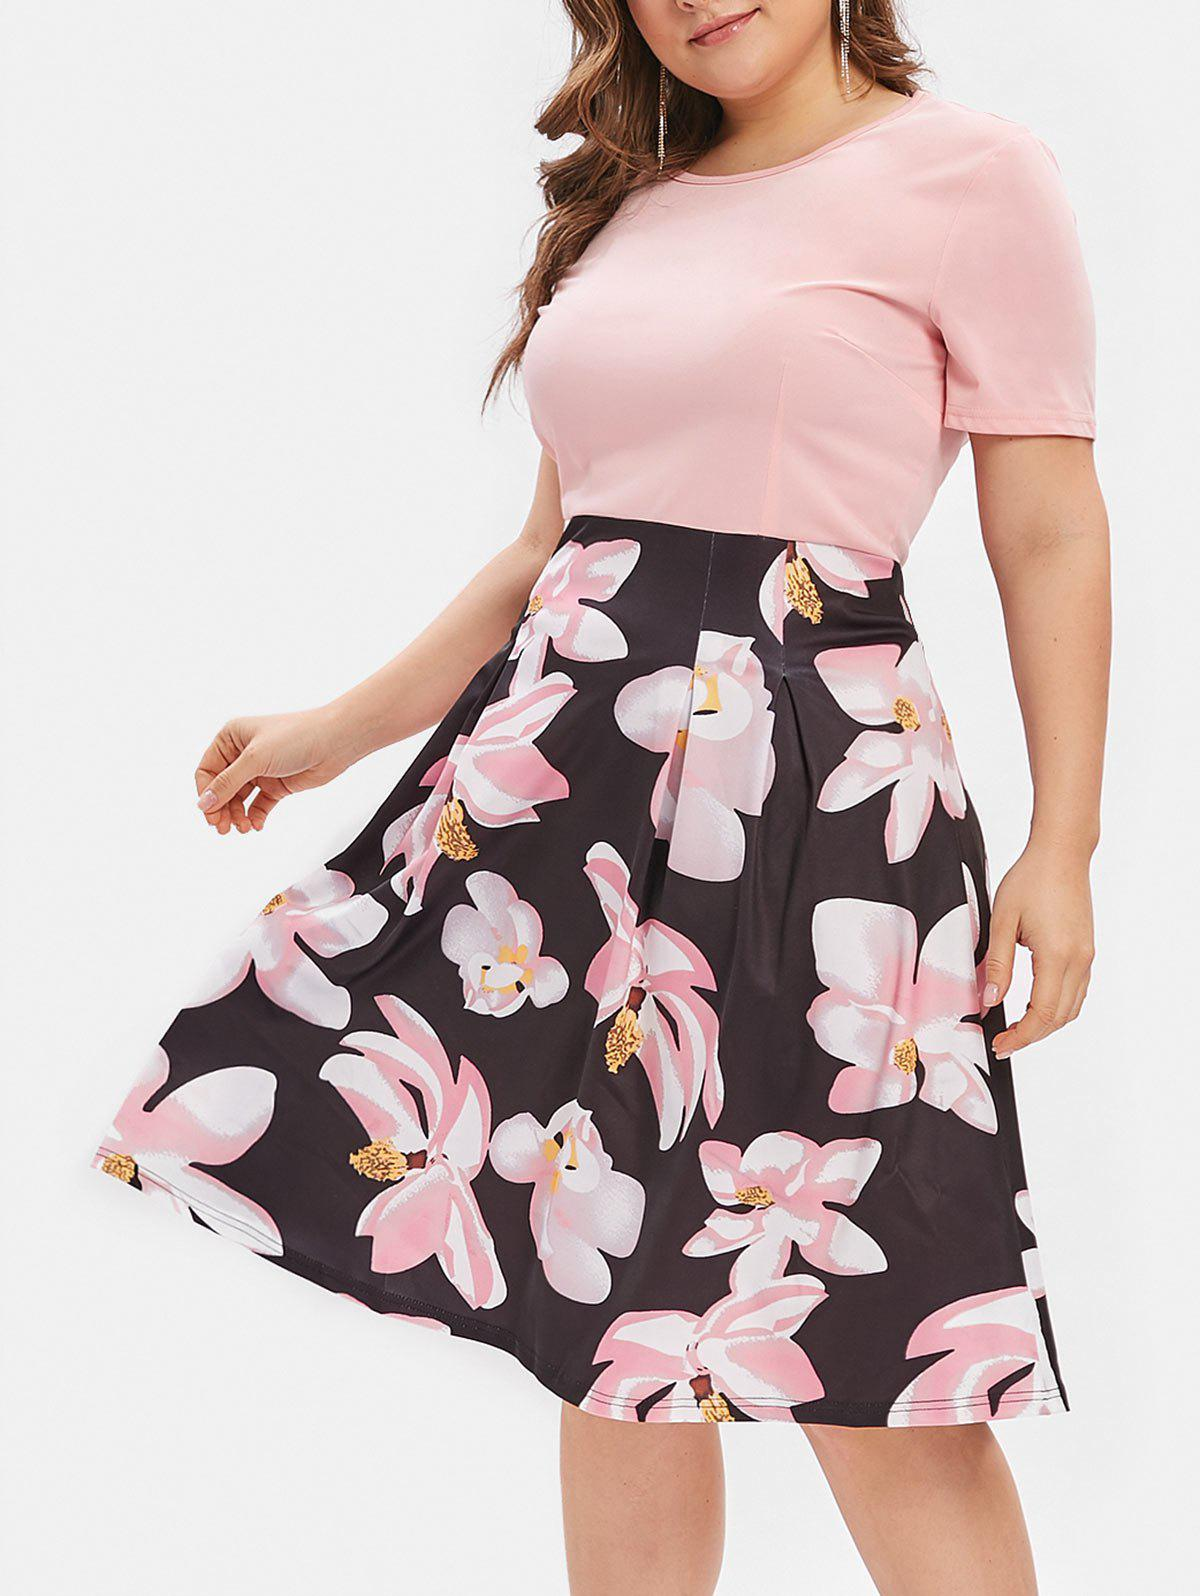 Plus Size Flower Print A Line Dress - LIGHT PINK 4X